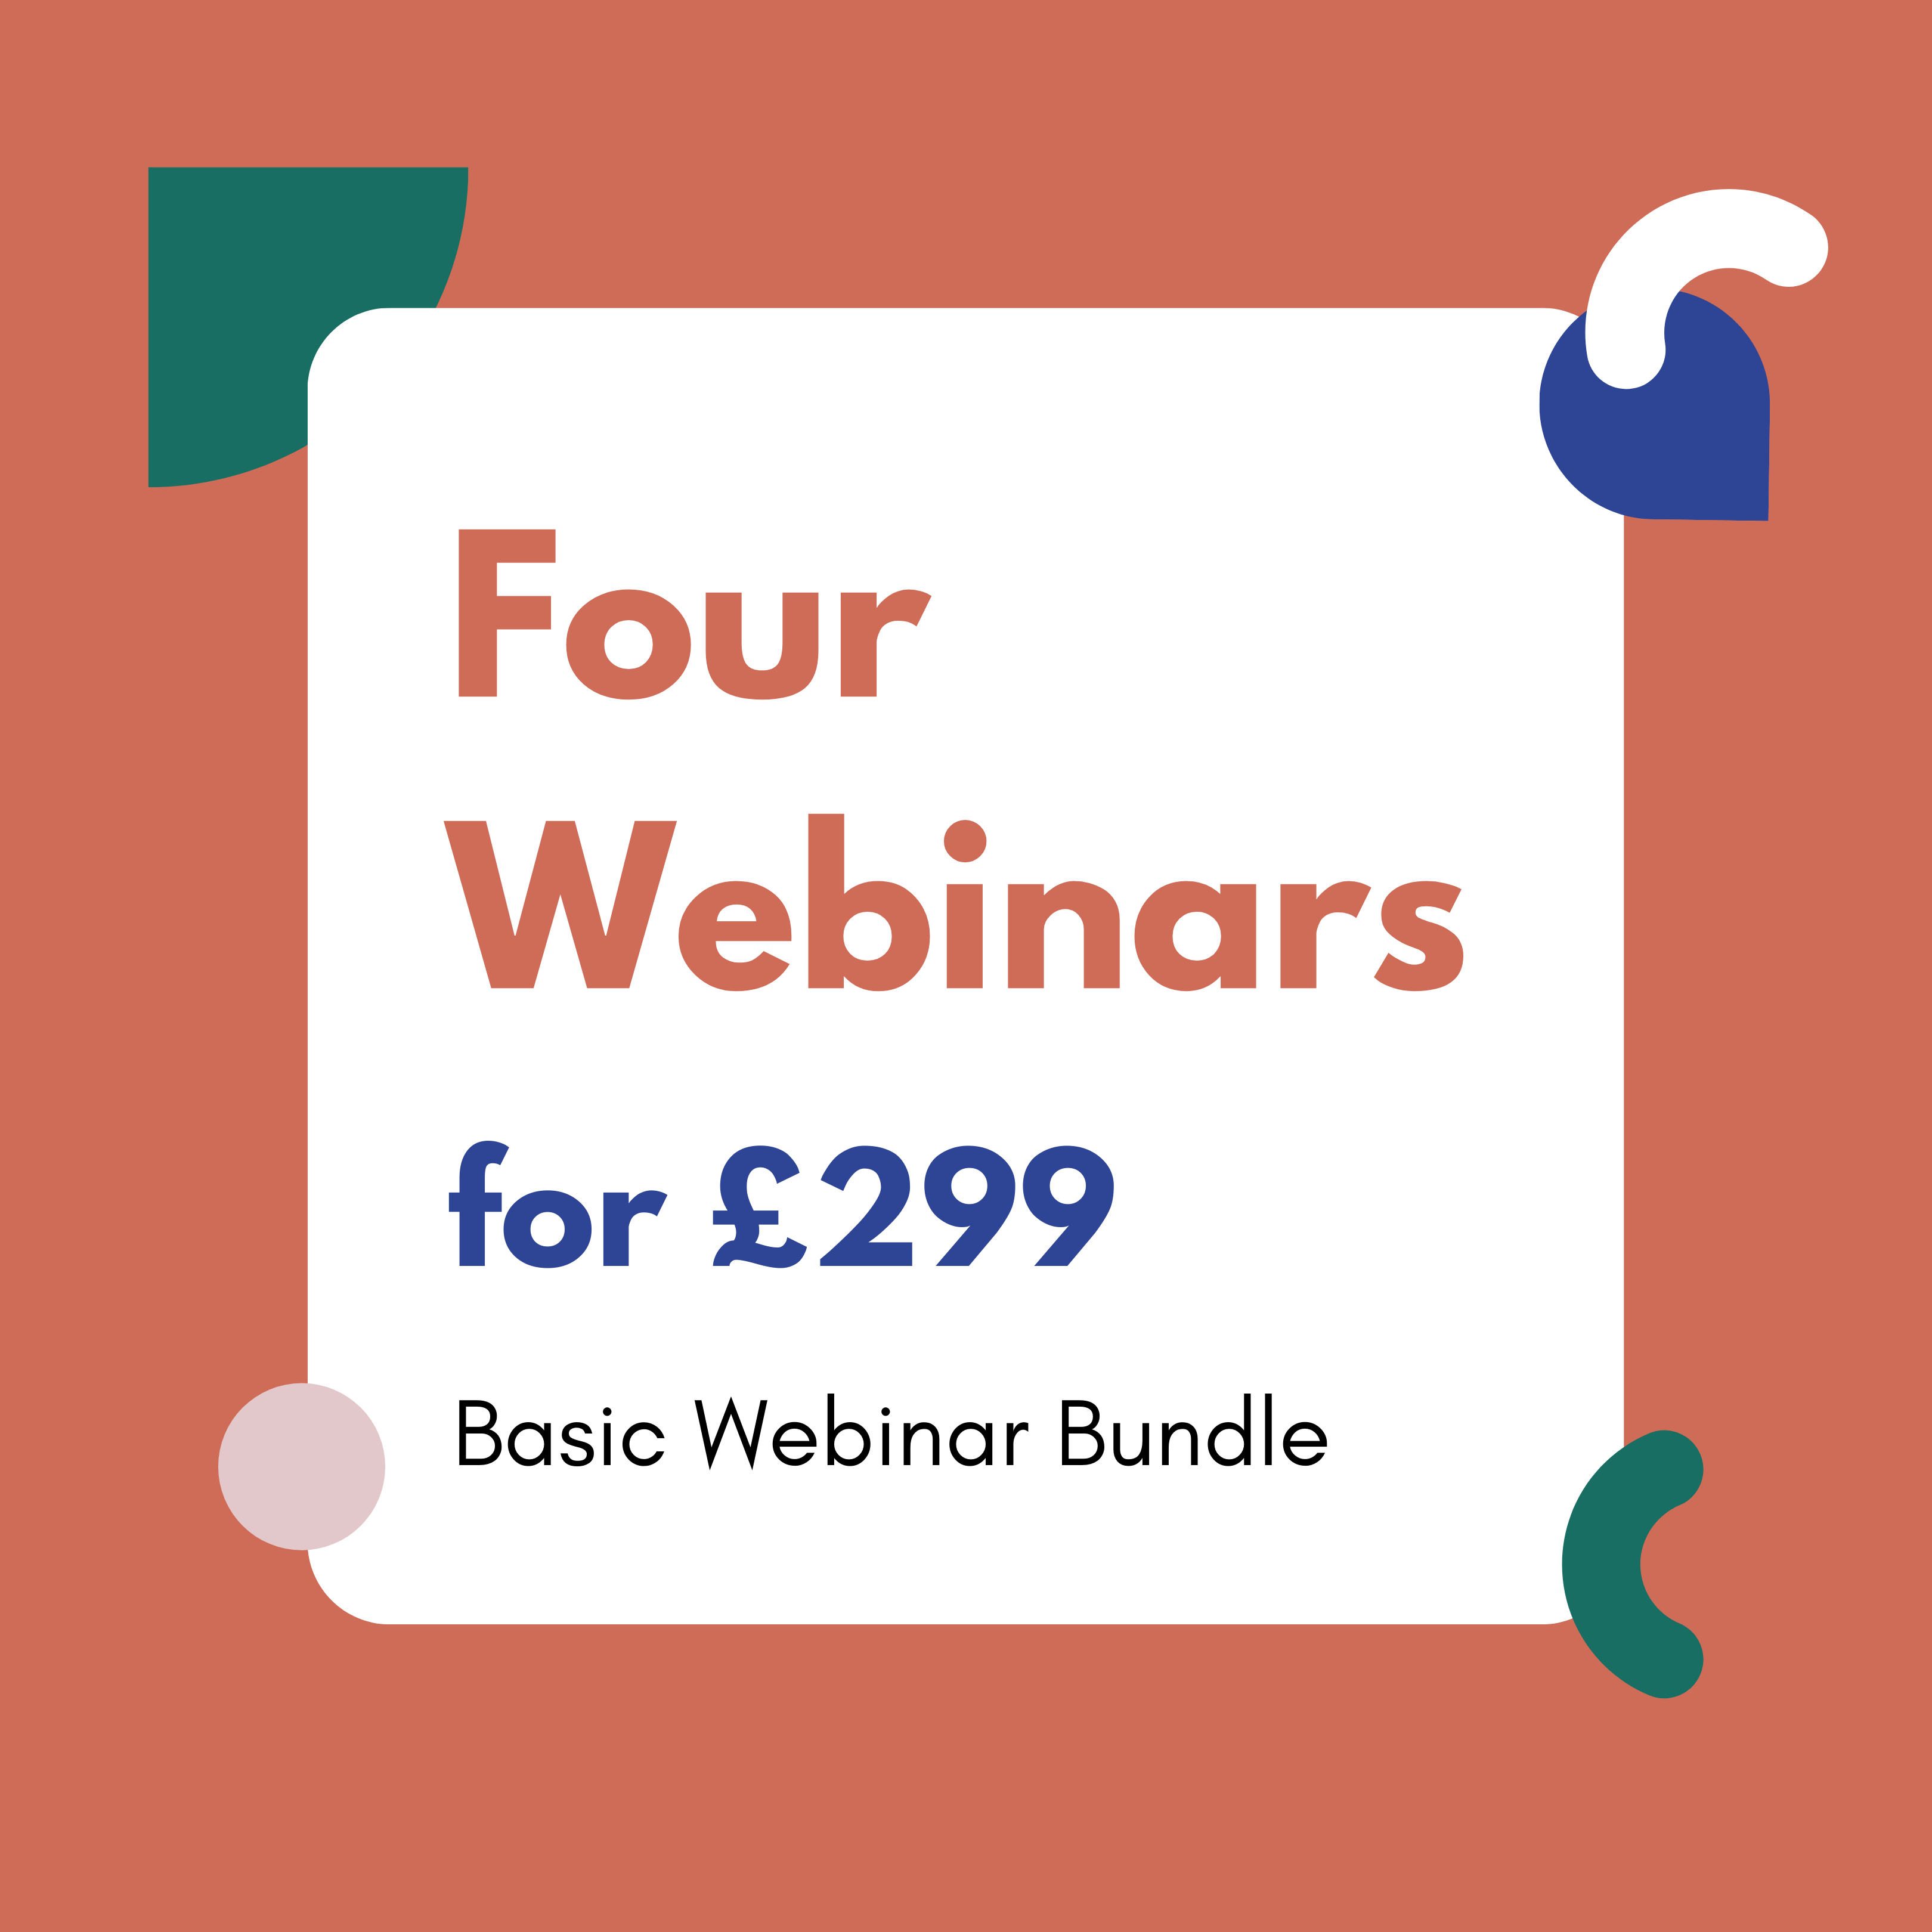 Discounted Webinar Bundle of all Four Courses